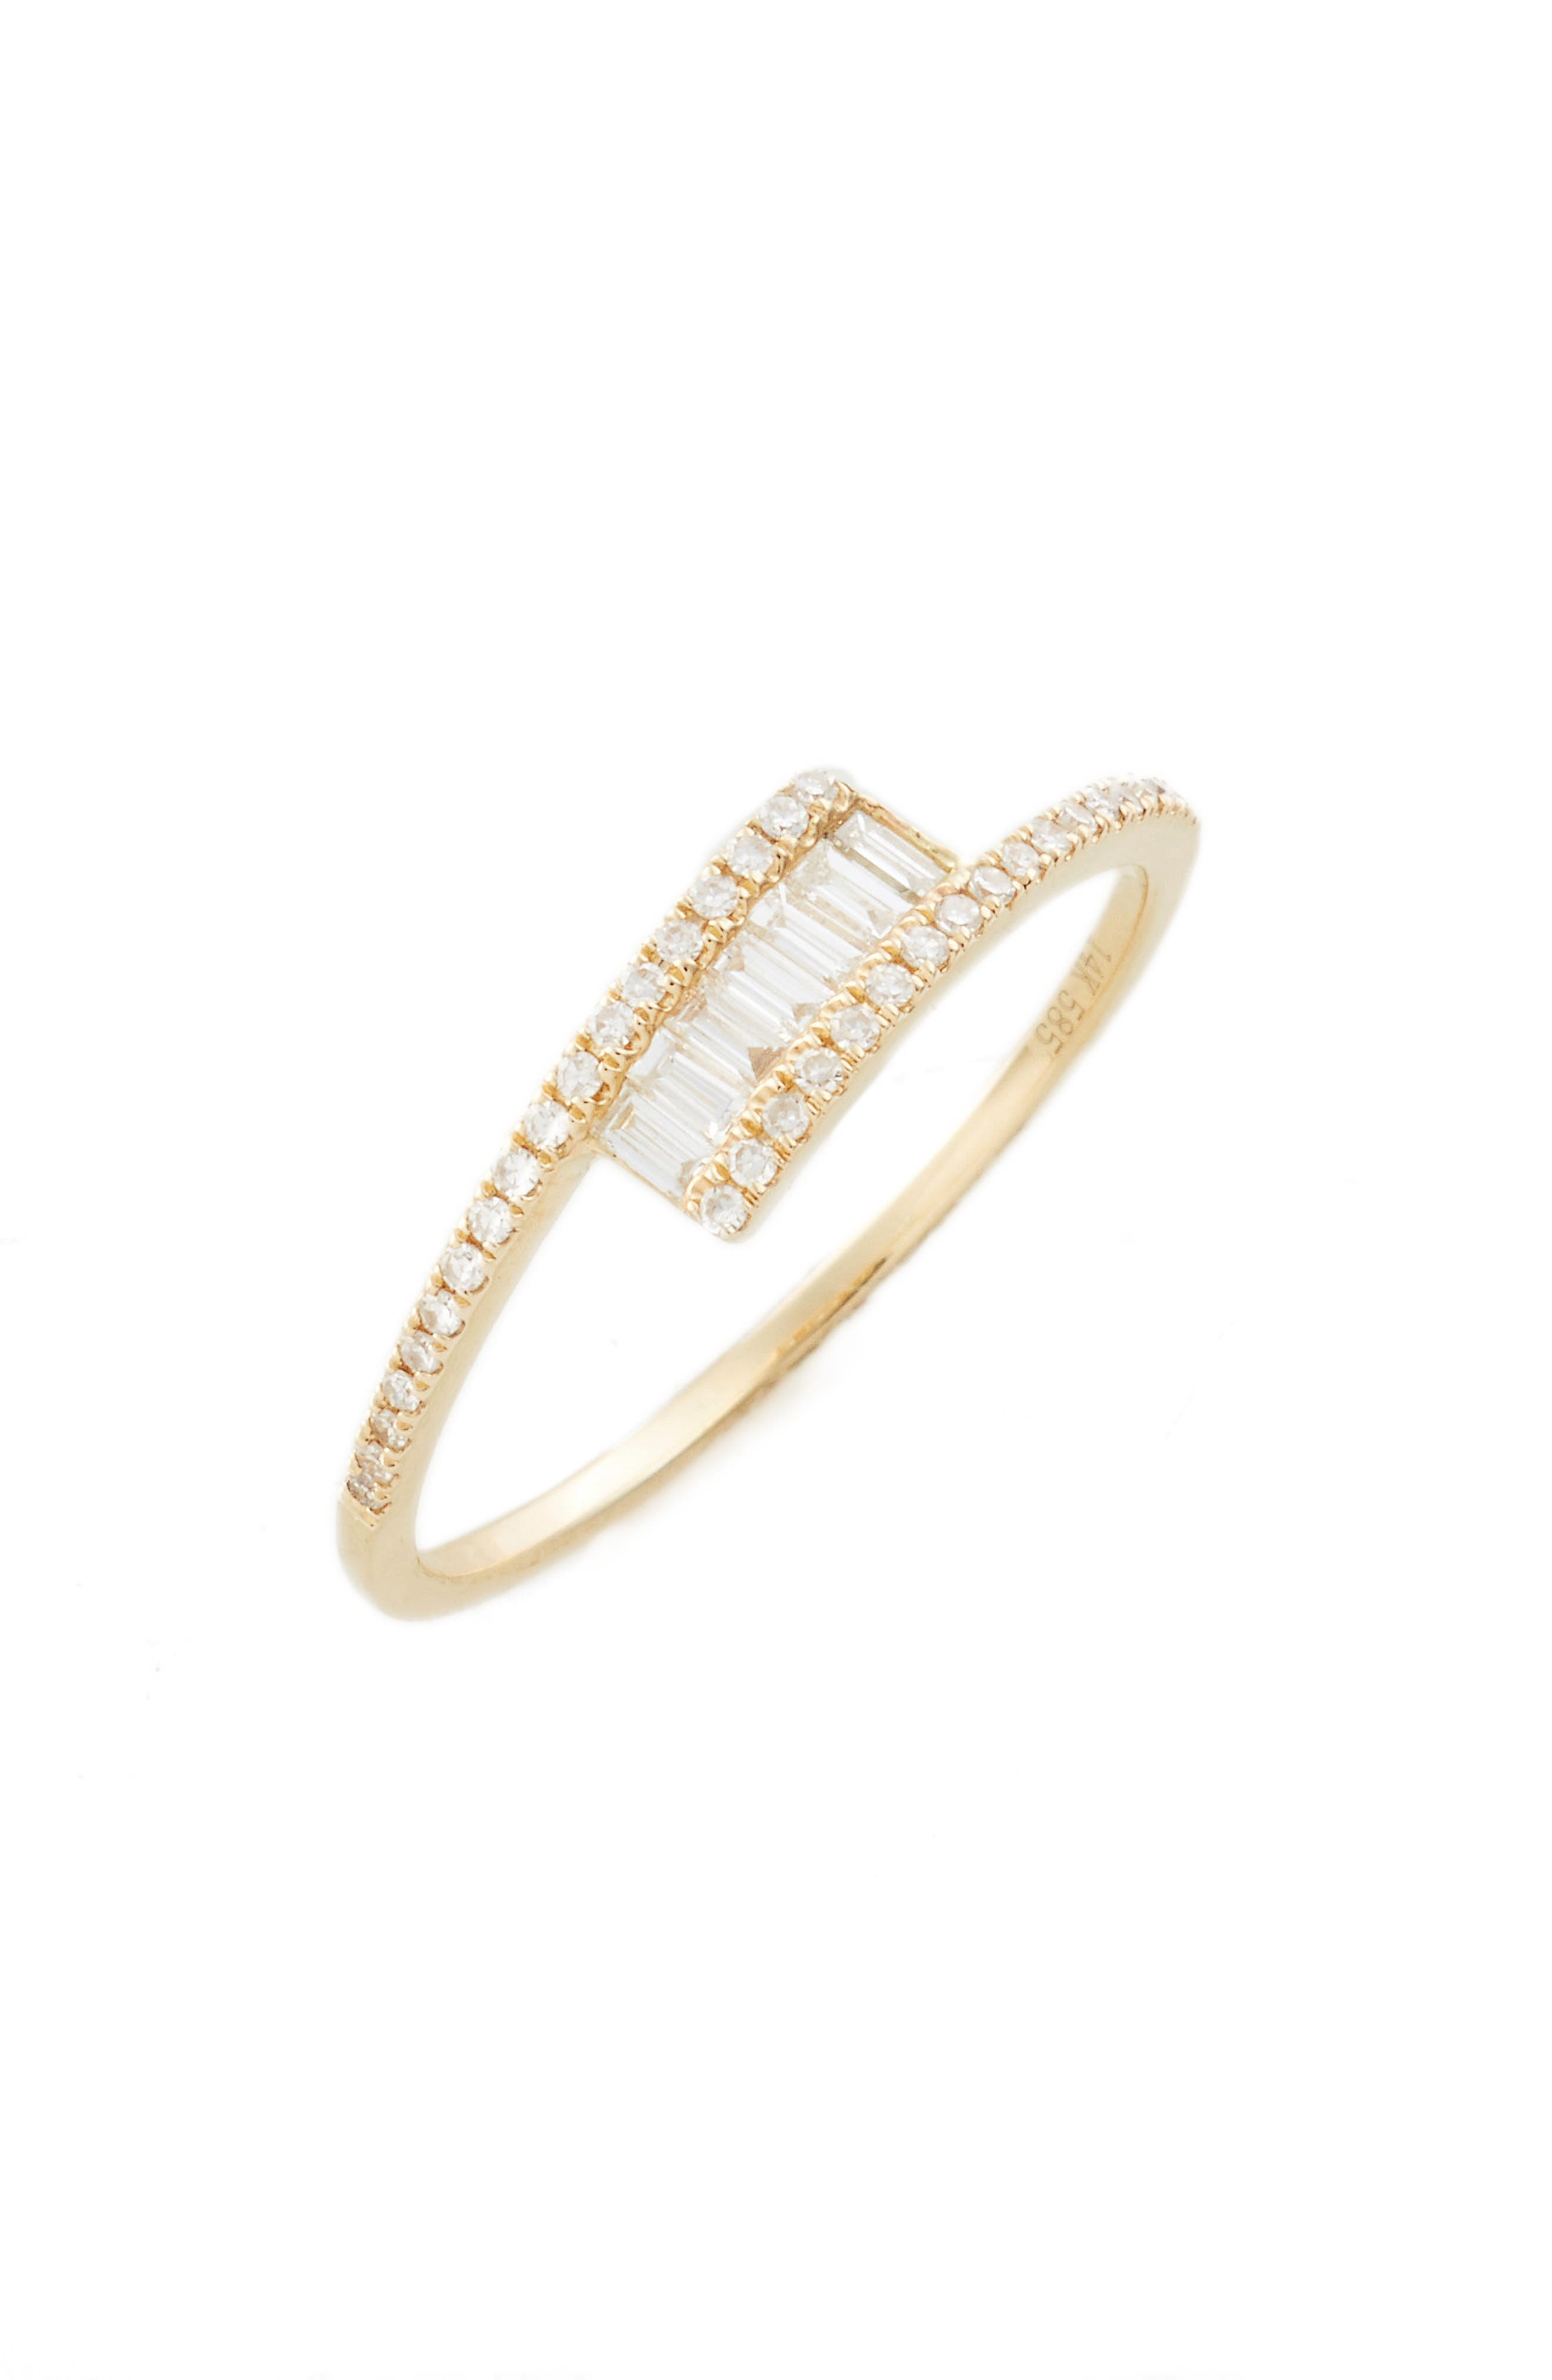 Baguette Diamond Ring,                         Main,                         color, YELLOW GOLD